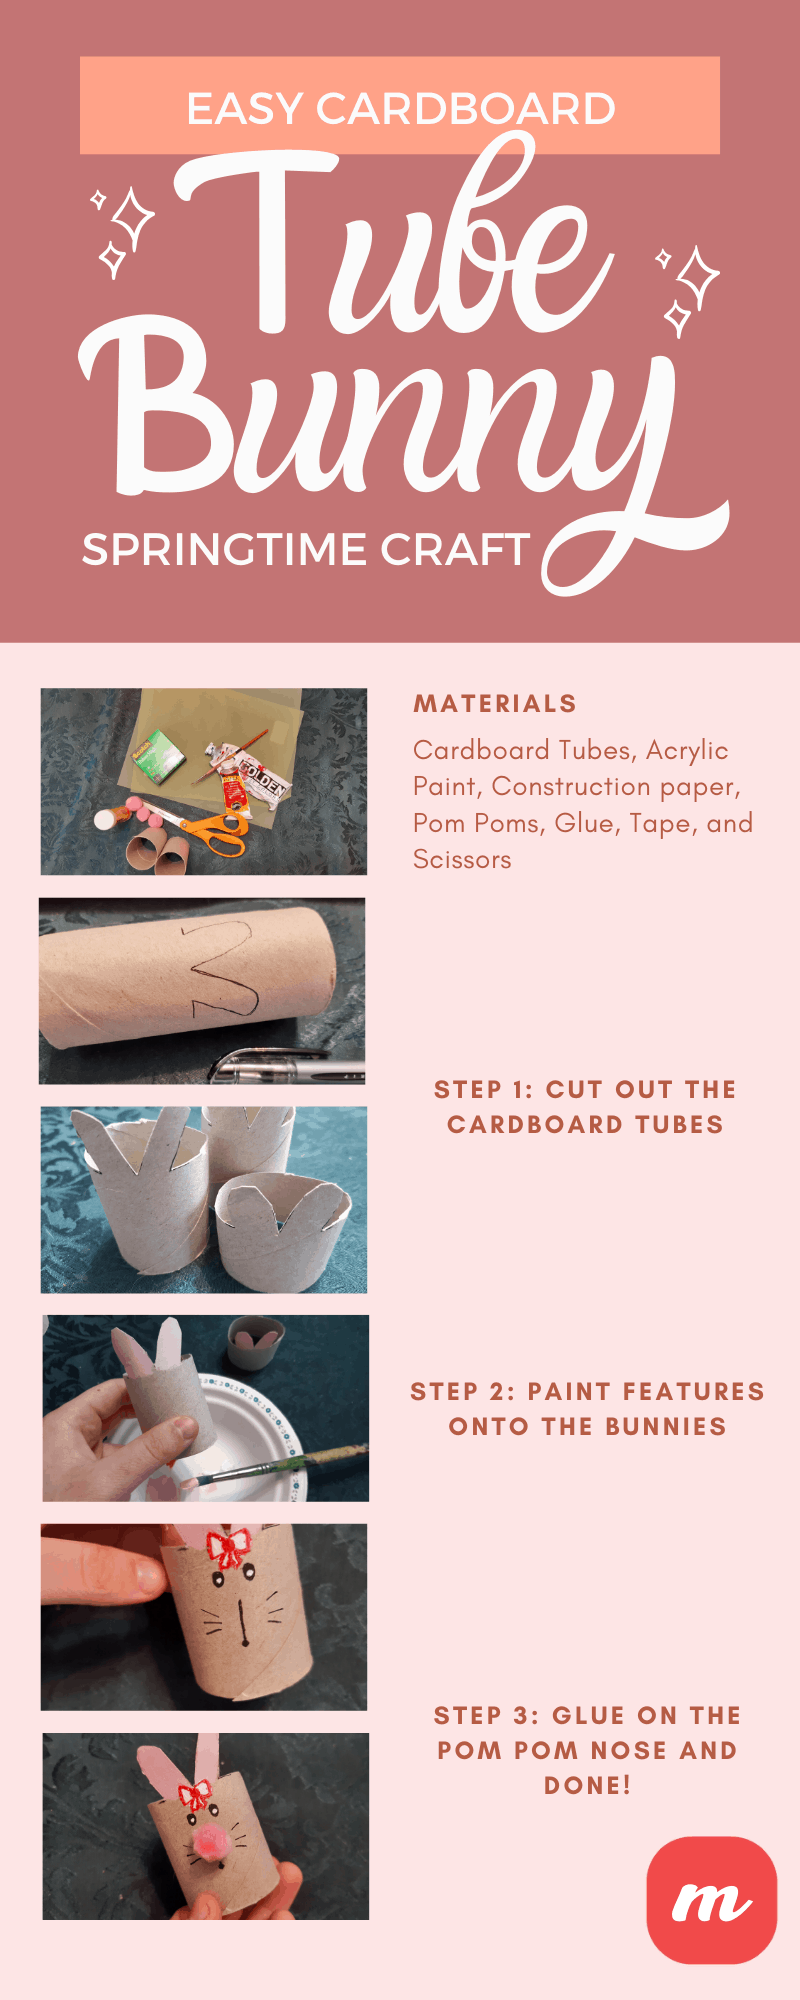 Easy Cardboard Tube Bunny Springtime Craft - Infographic